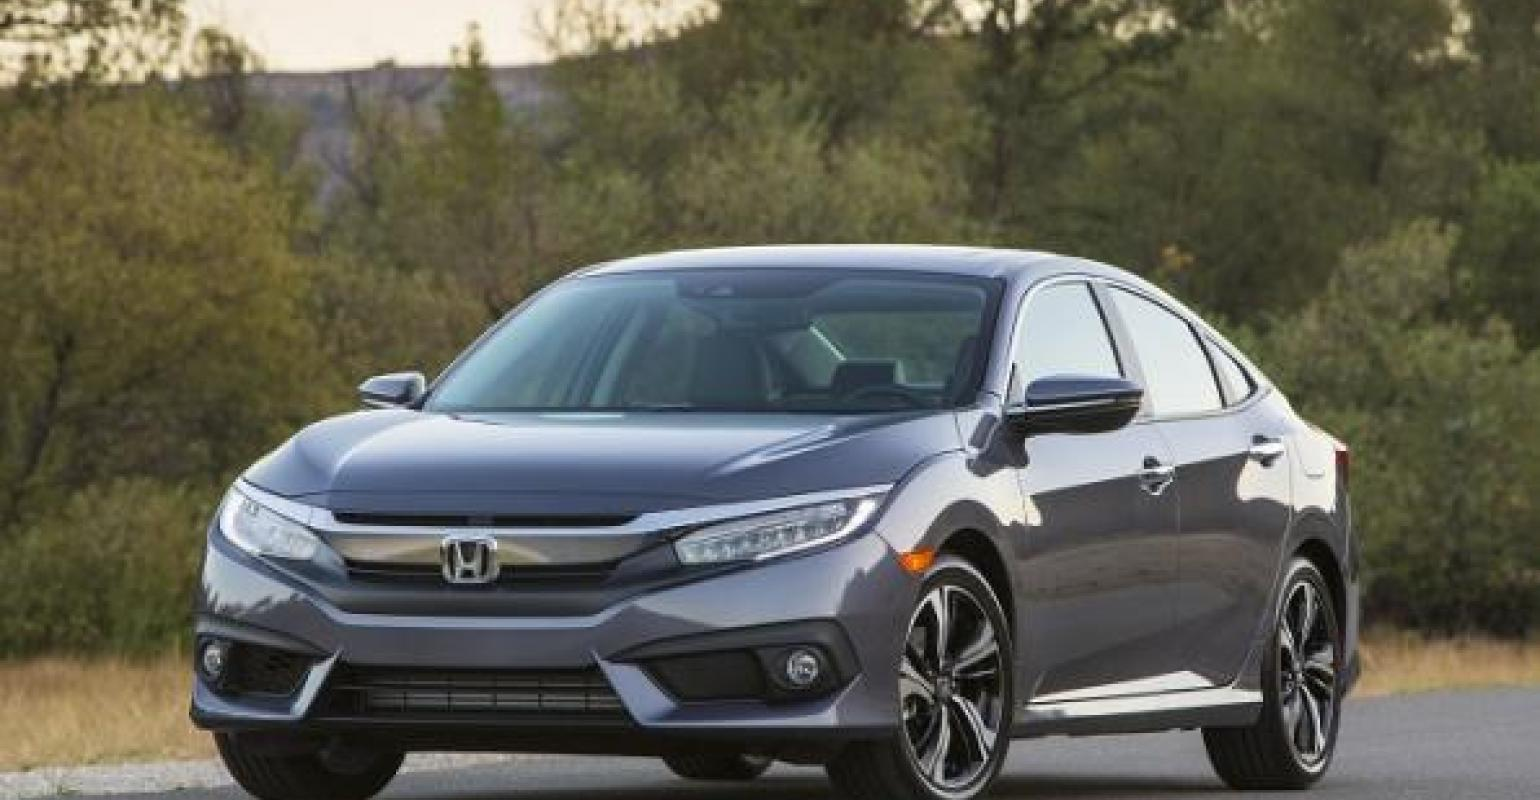 Gravity Auto Sales >> Honda Car Sales Hot One Of Only Two Brands To See Increase Wardsauto